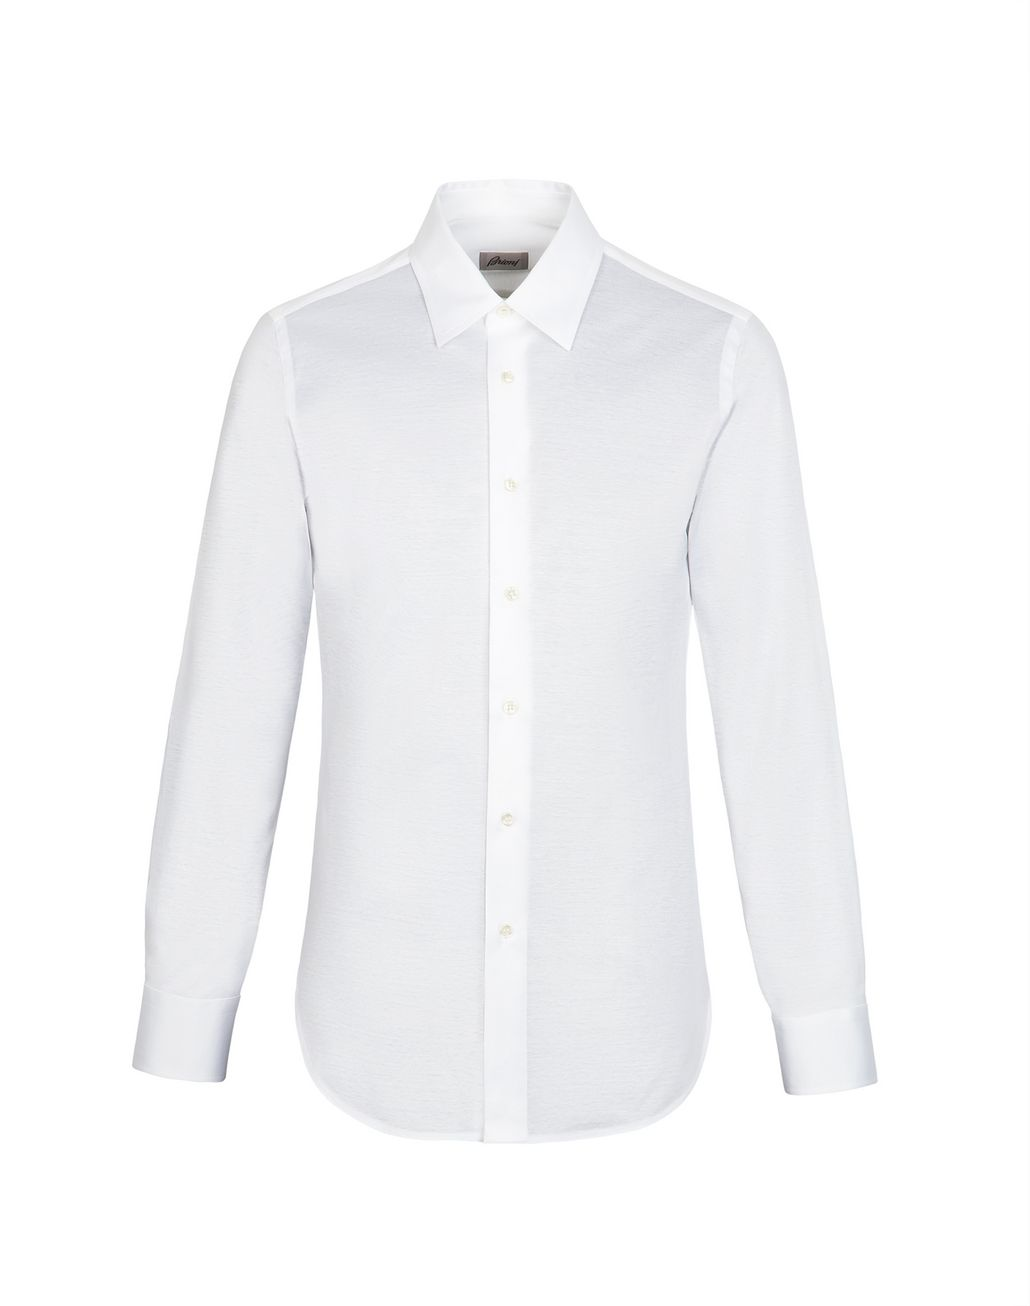 BRIONI White Long Sleeved Jersey Shirt Leisure shirt Man d